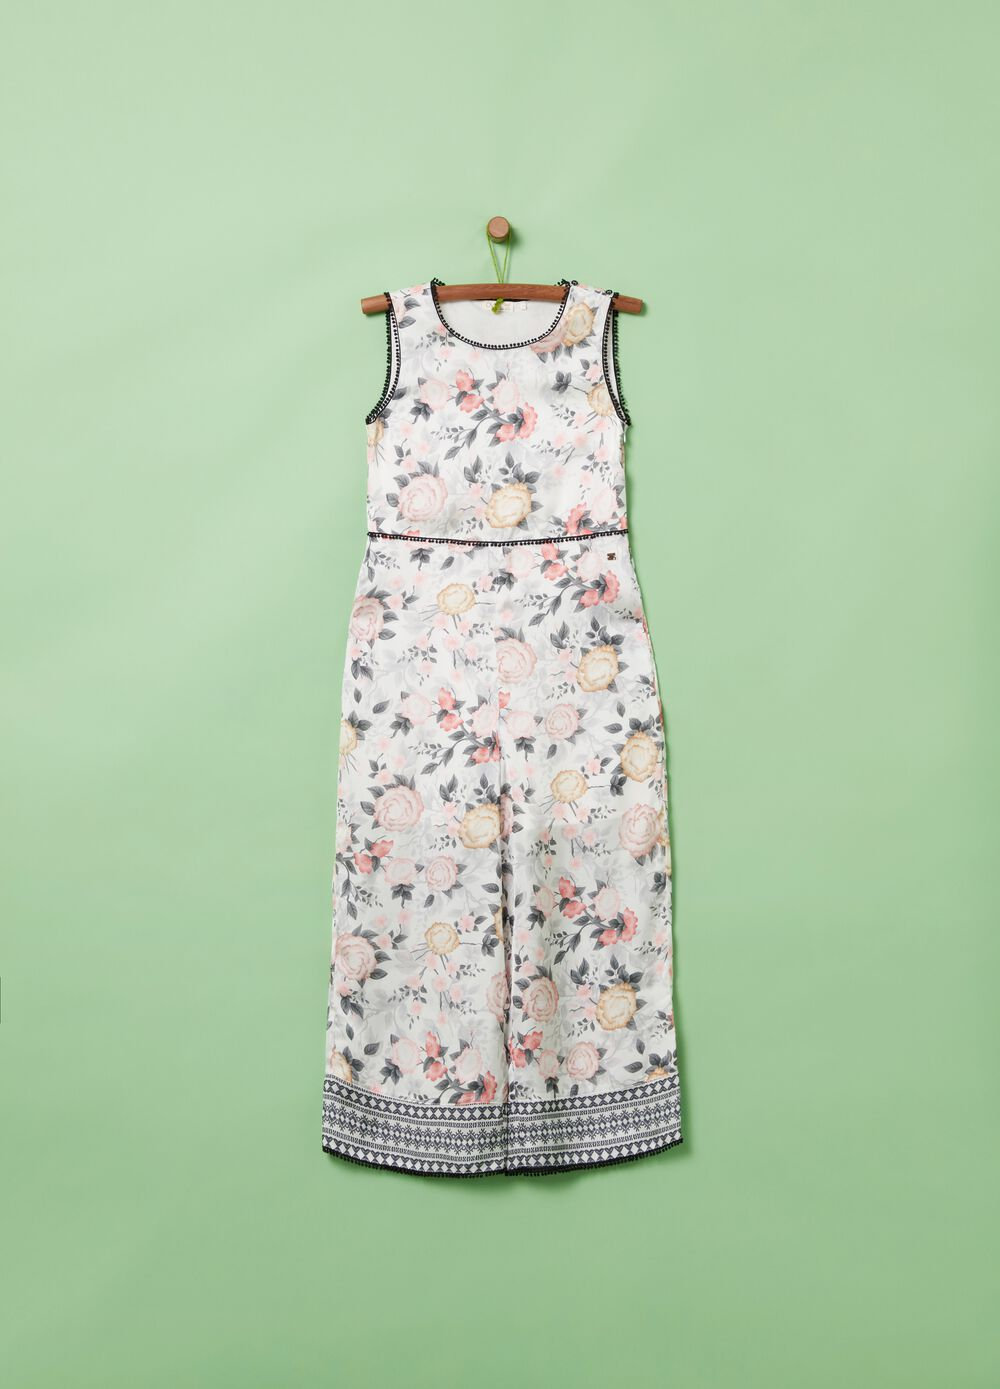 Playsuit with floral pattern